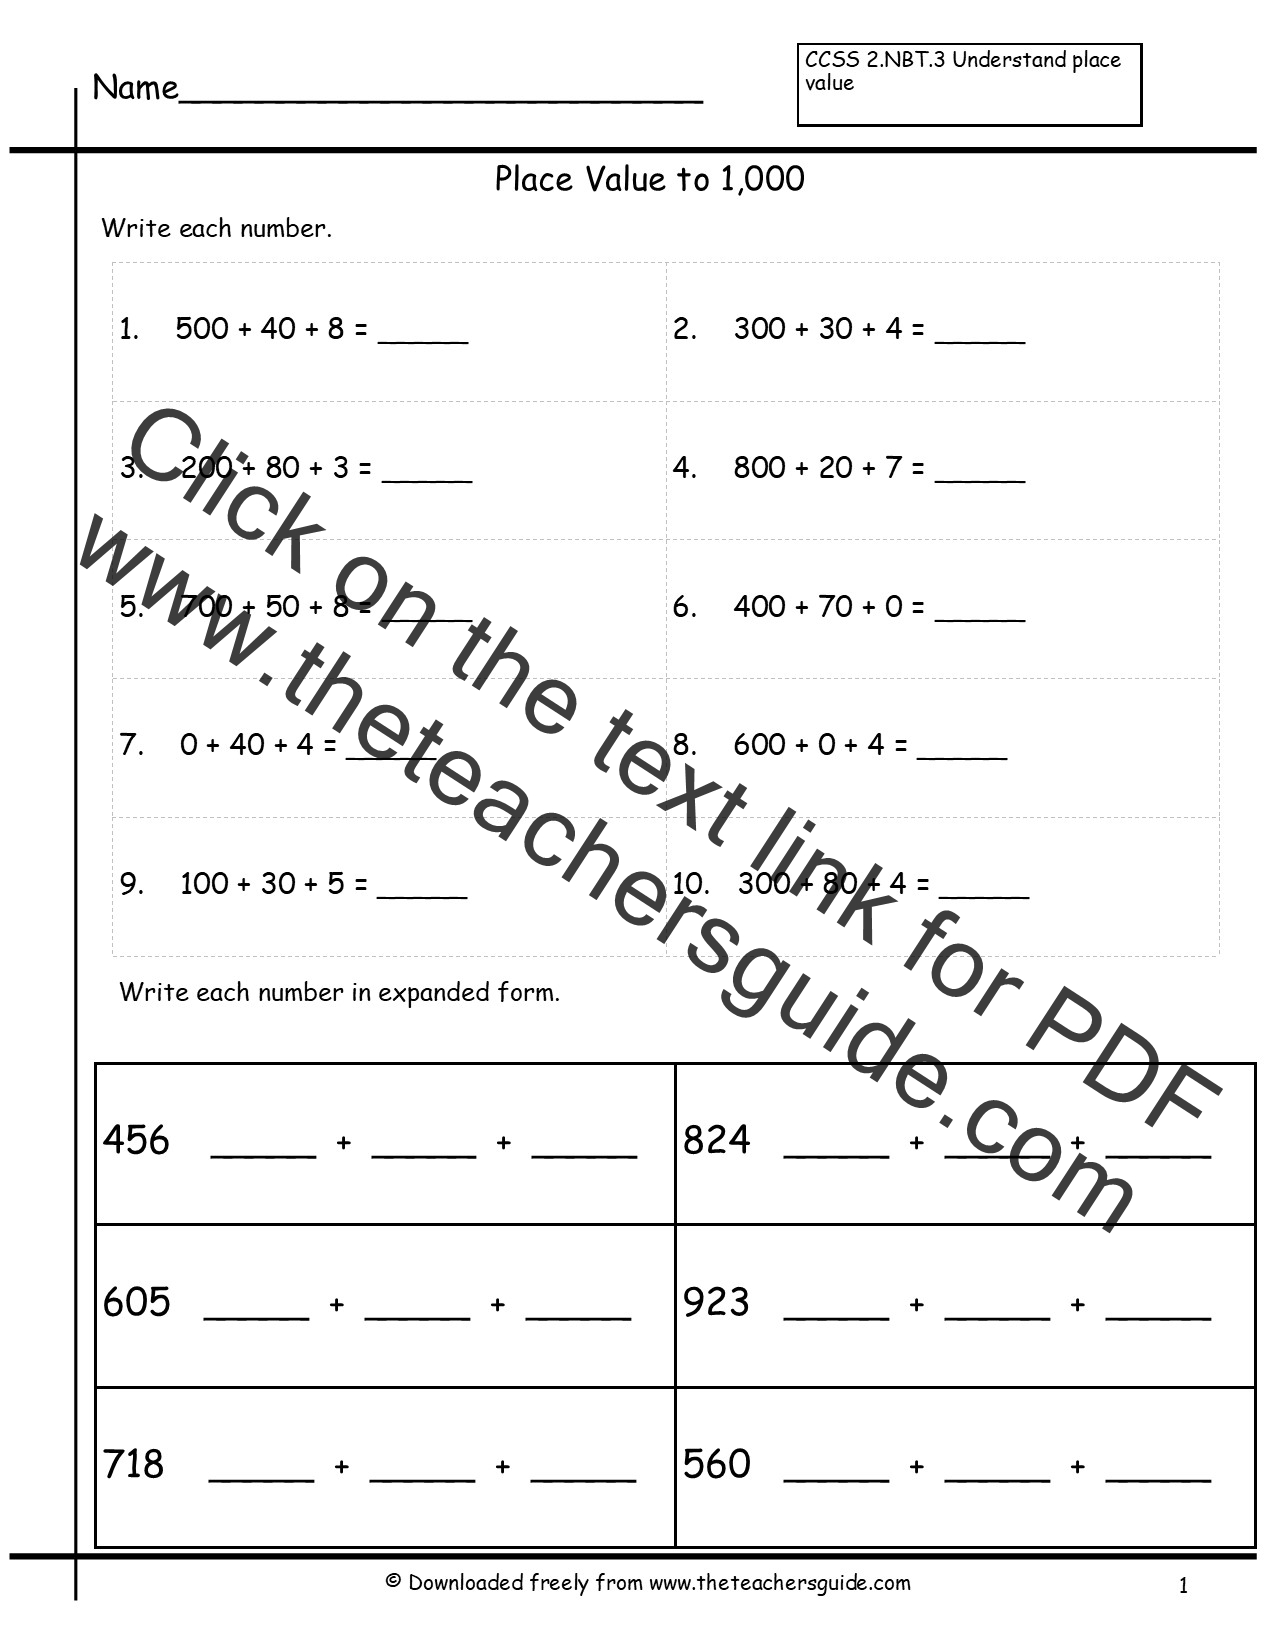 Expanded Form Worksheets Virallyapp Printables Worksheets – Expanded Form Worksheets